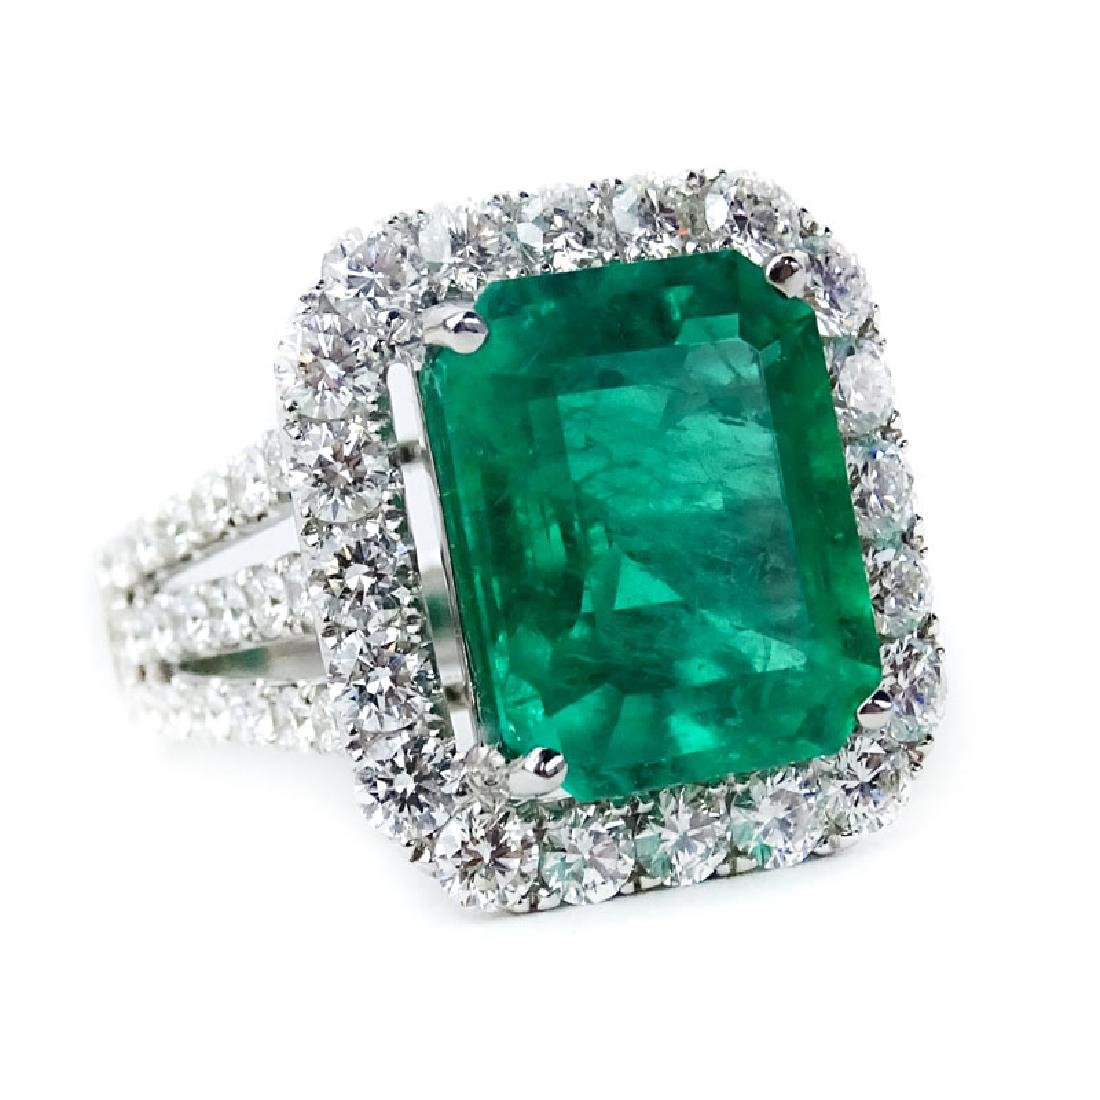 GIA Certified 7.20 Carat Colombian Emerald, 2.58 Carat